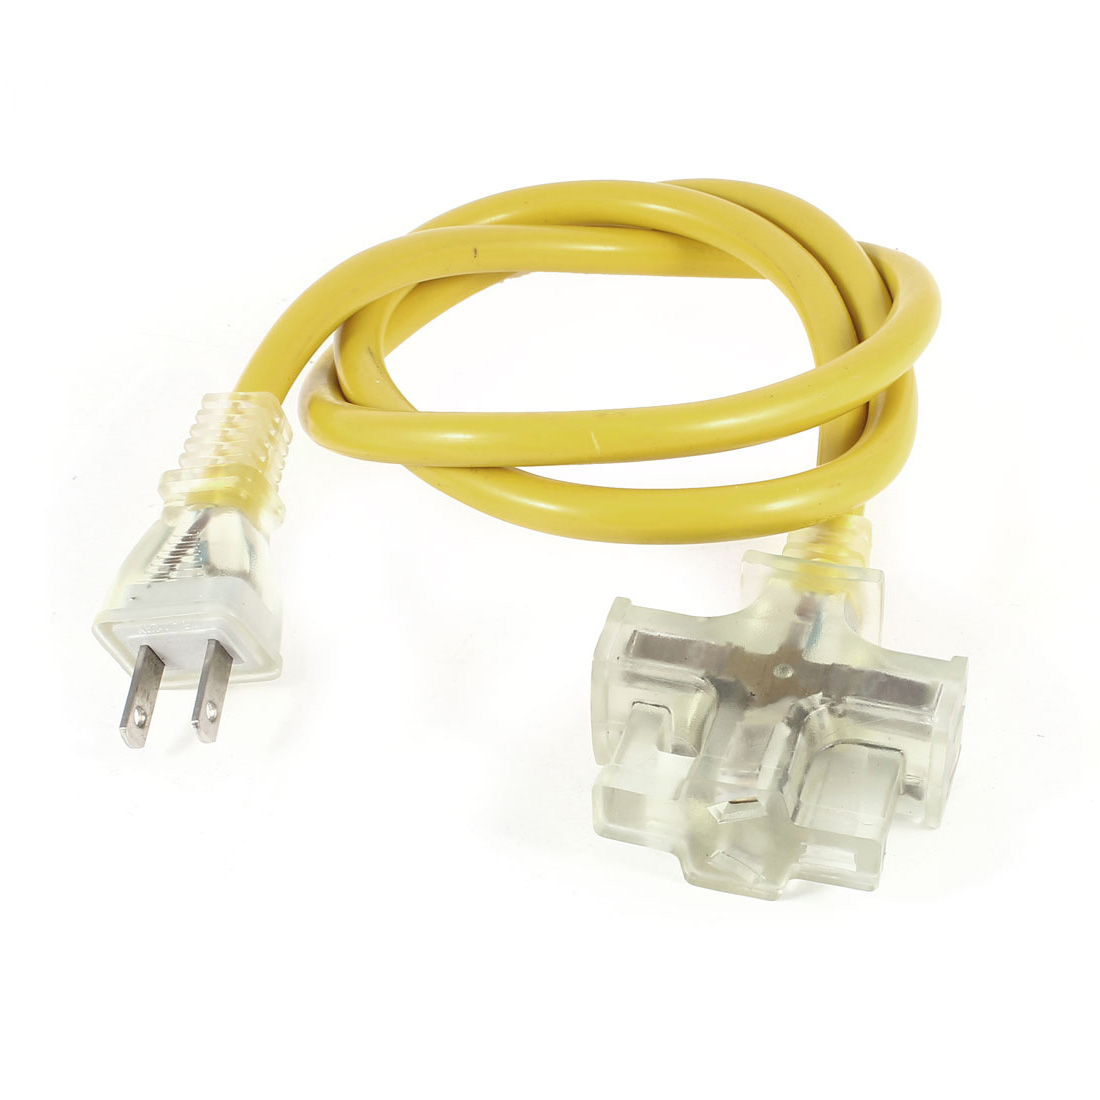 US Plug AC 125V 15A AU US Socket Power Cord 3 Outlet Splitter Yellow 1M